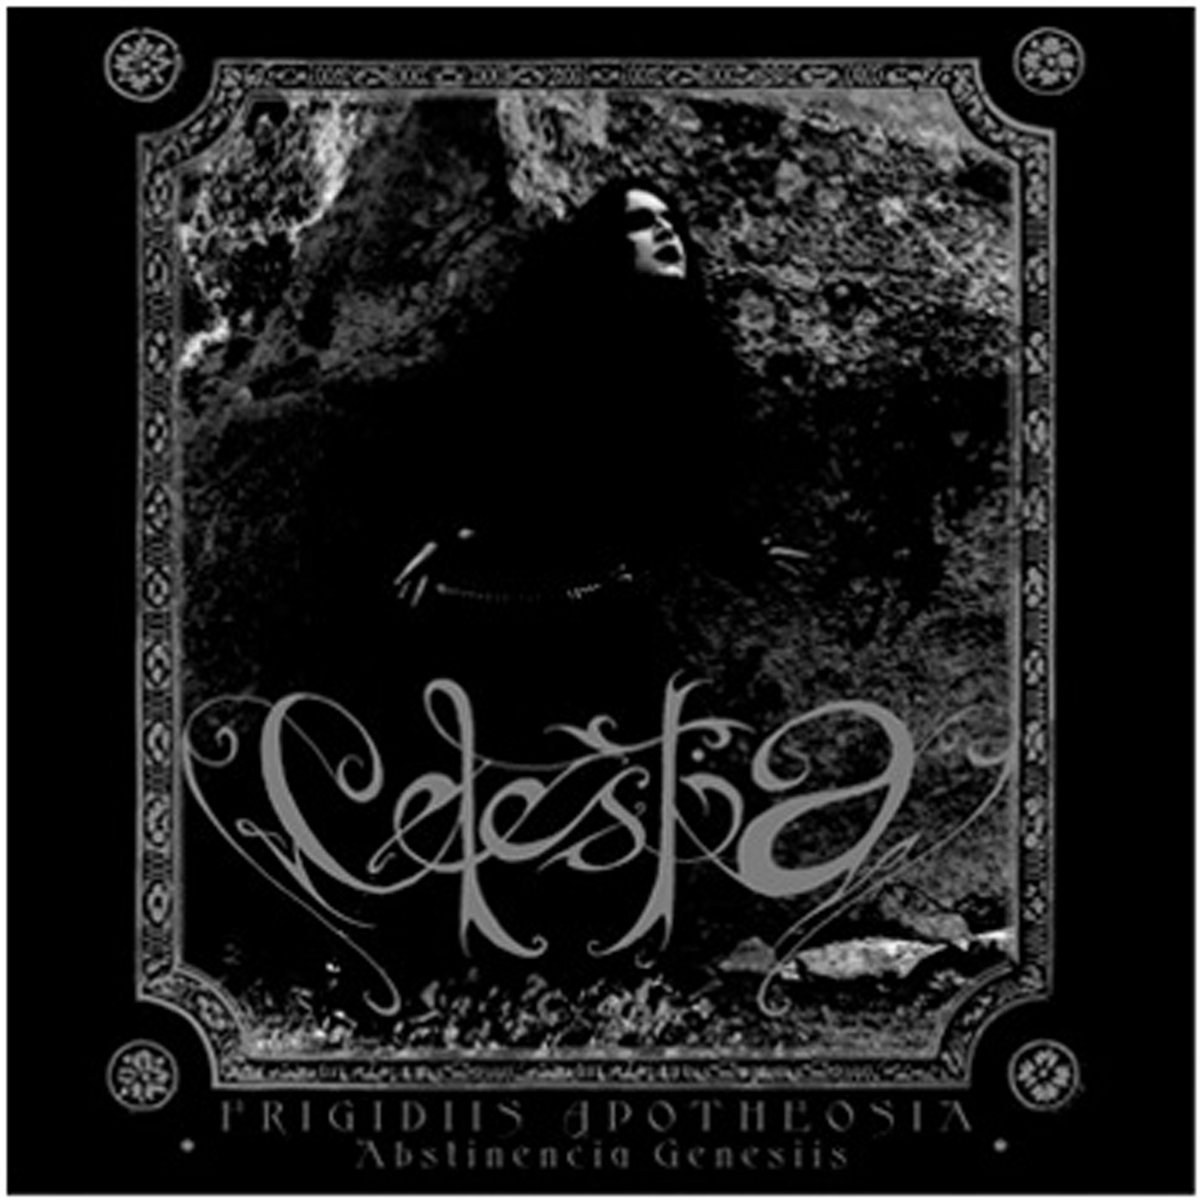 Review for Celestia - Frigidiis Apotheosia - Abstinencia Genesiis